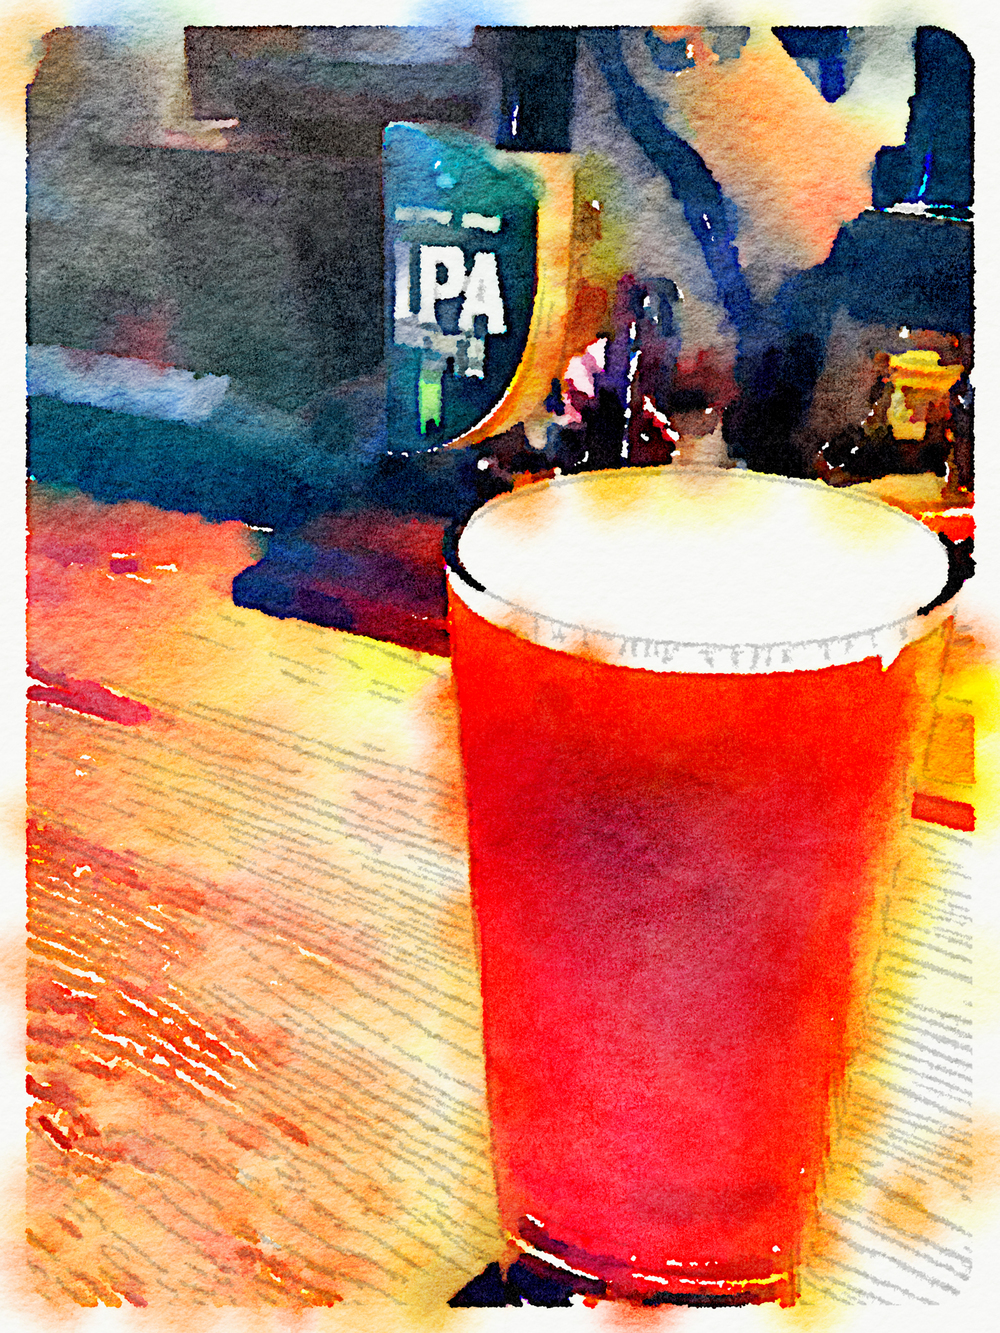 My flight home went through London, and while my layover was very short, it did give me a chance to have a proper British pint. Another Waterlogue-processed image.